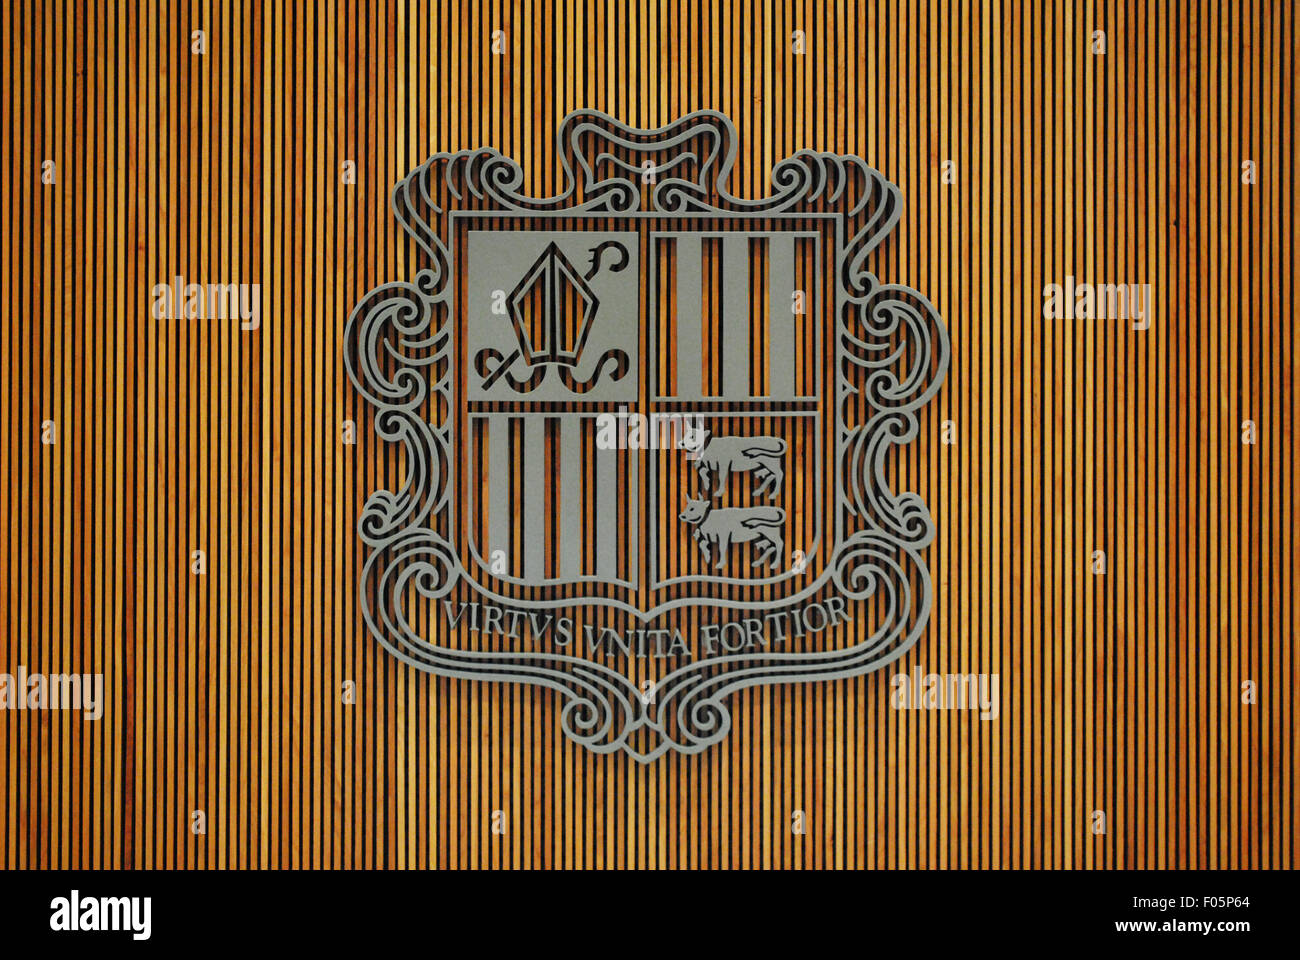 The coat of arms of Andorra against a wooden wall covering. Stock Photo